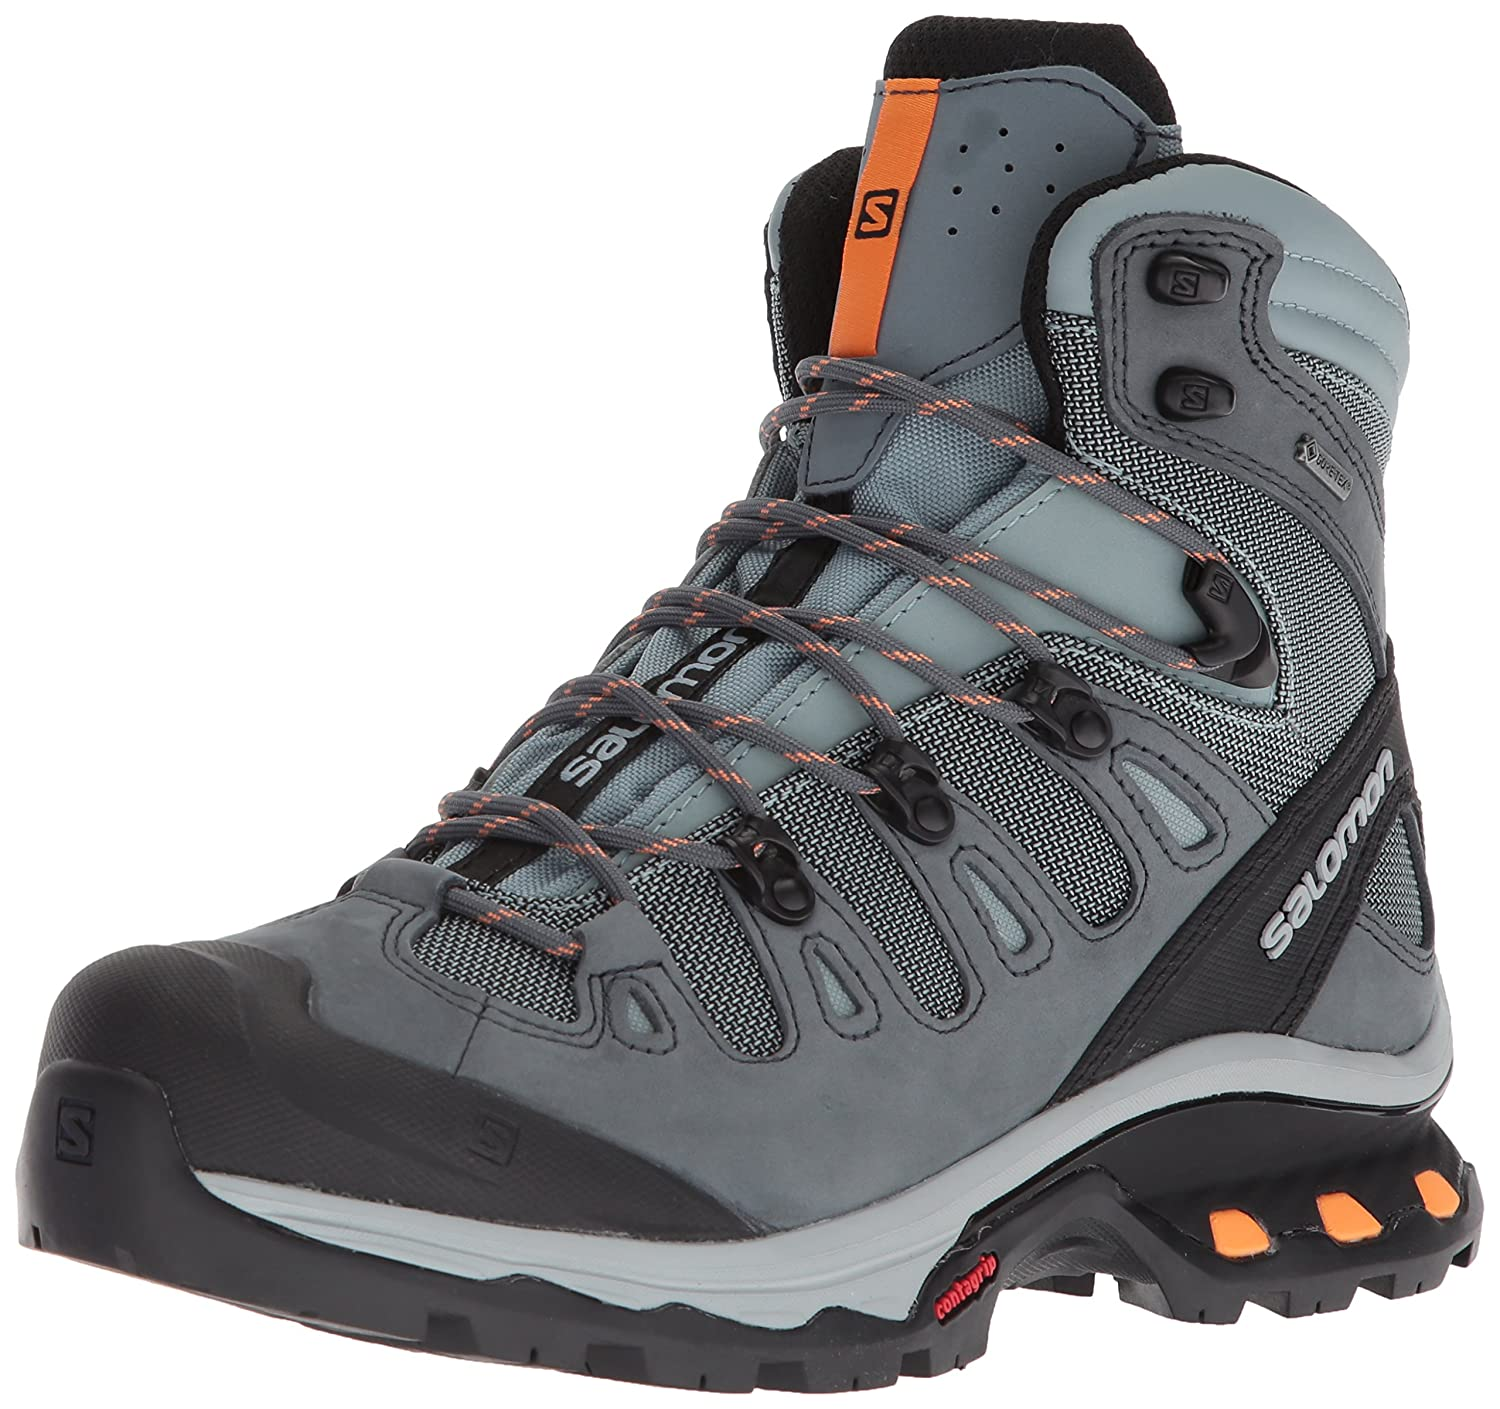 Salomon Women's Quest 4d 3 GTX W Backpacking Boots B0788D7S54 7.5 M US|Lead/Stormy Weather